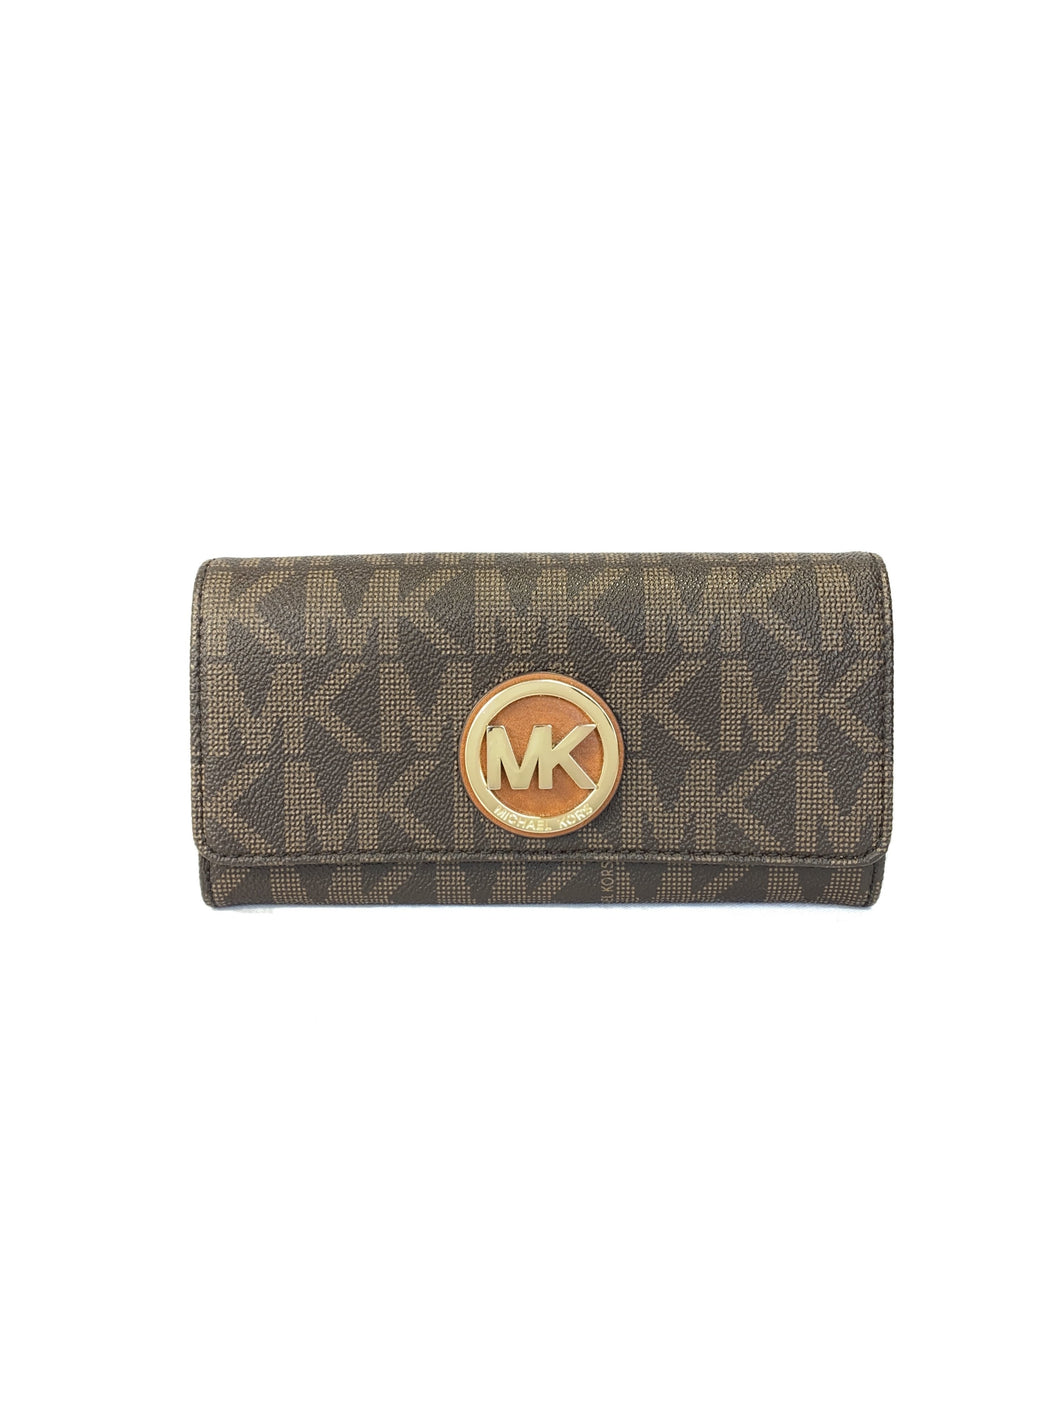 Michael Kors brown signature wallet - My Girlfriend's Wardrobe LLC